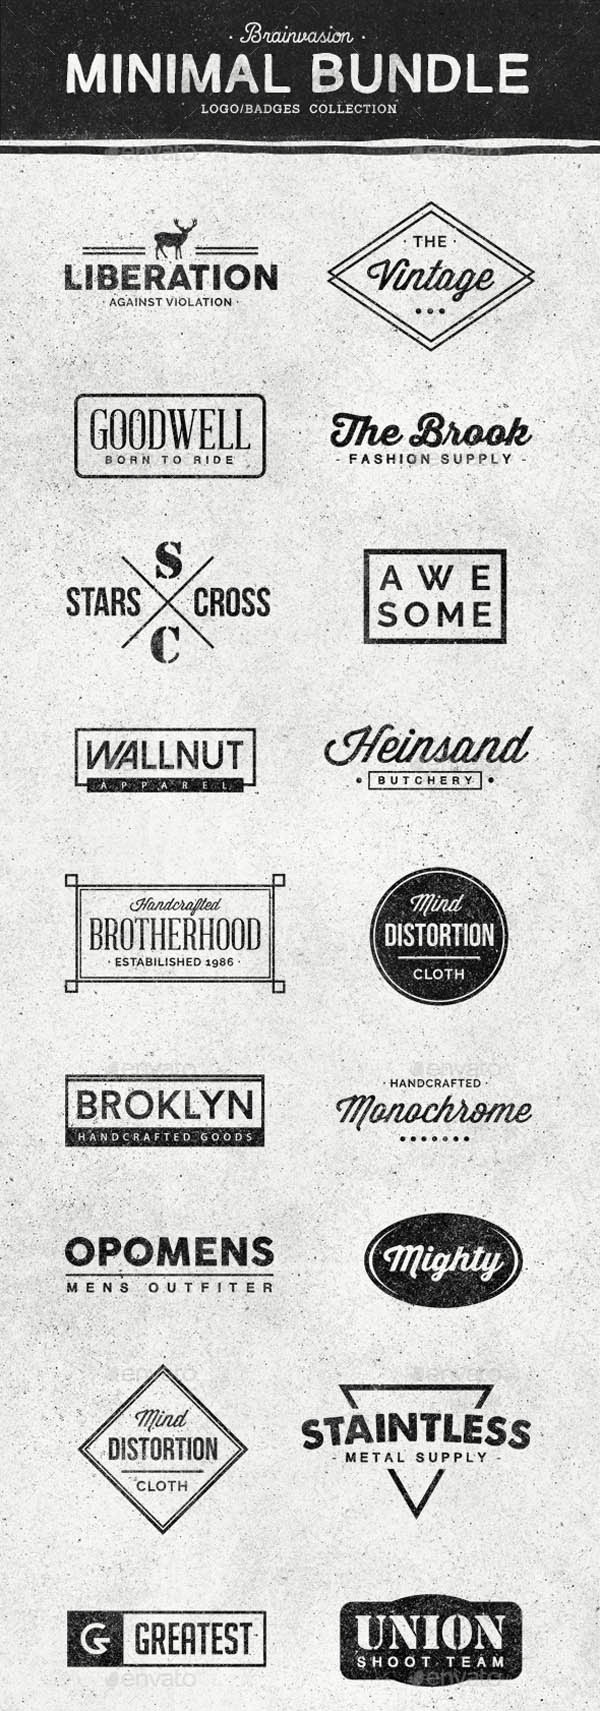 Minimal Logo/Badges Bundle - 1